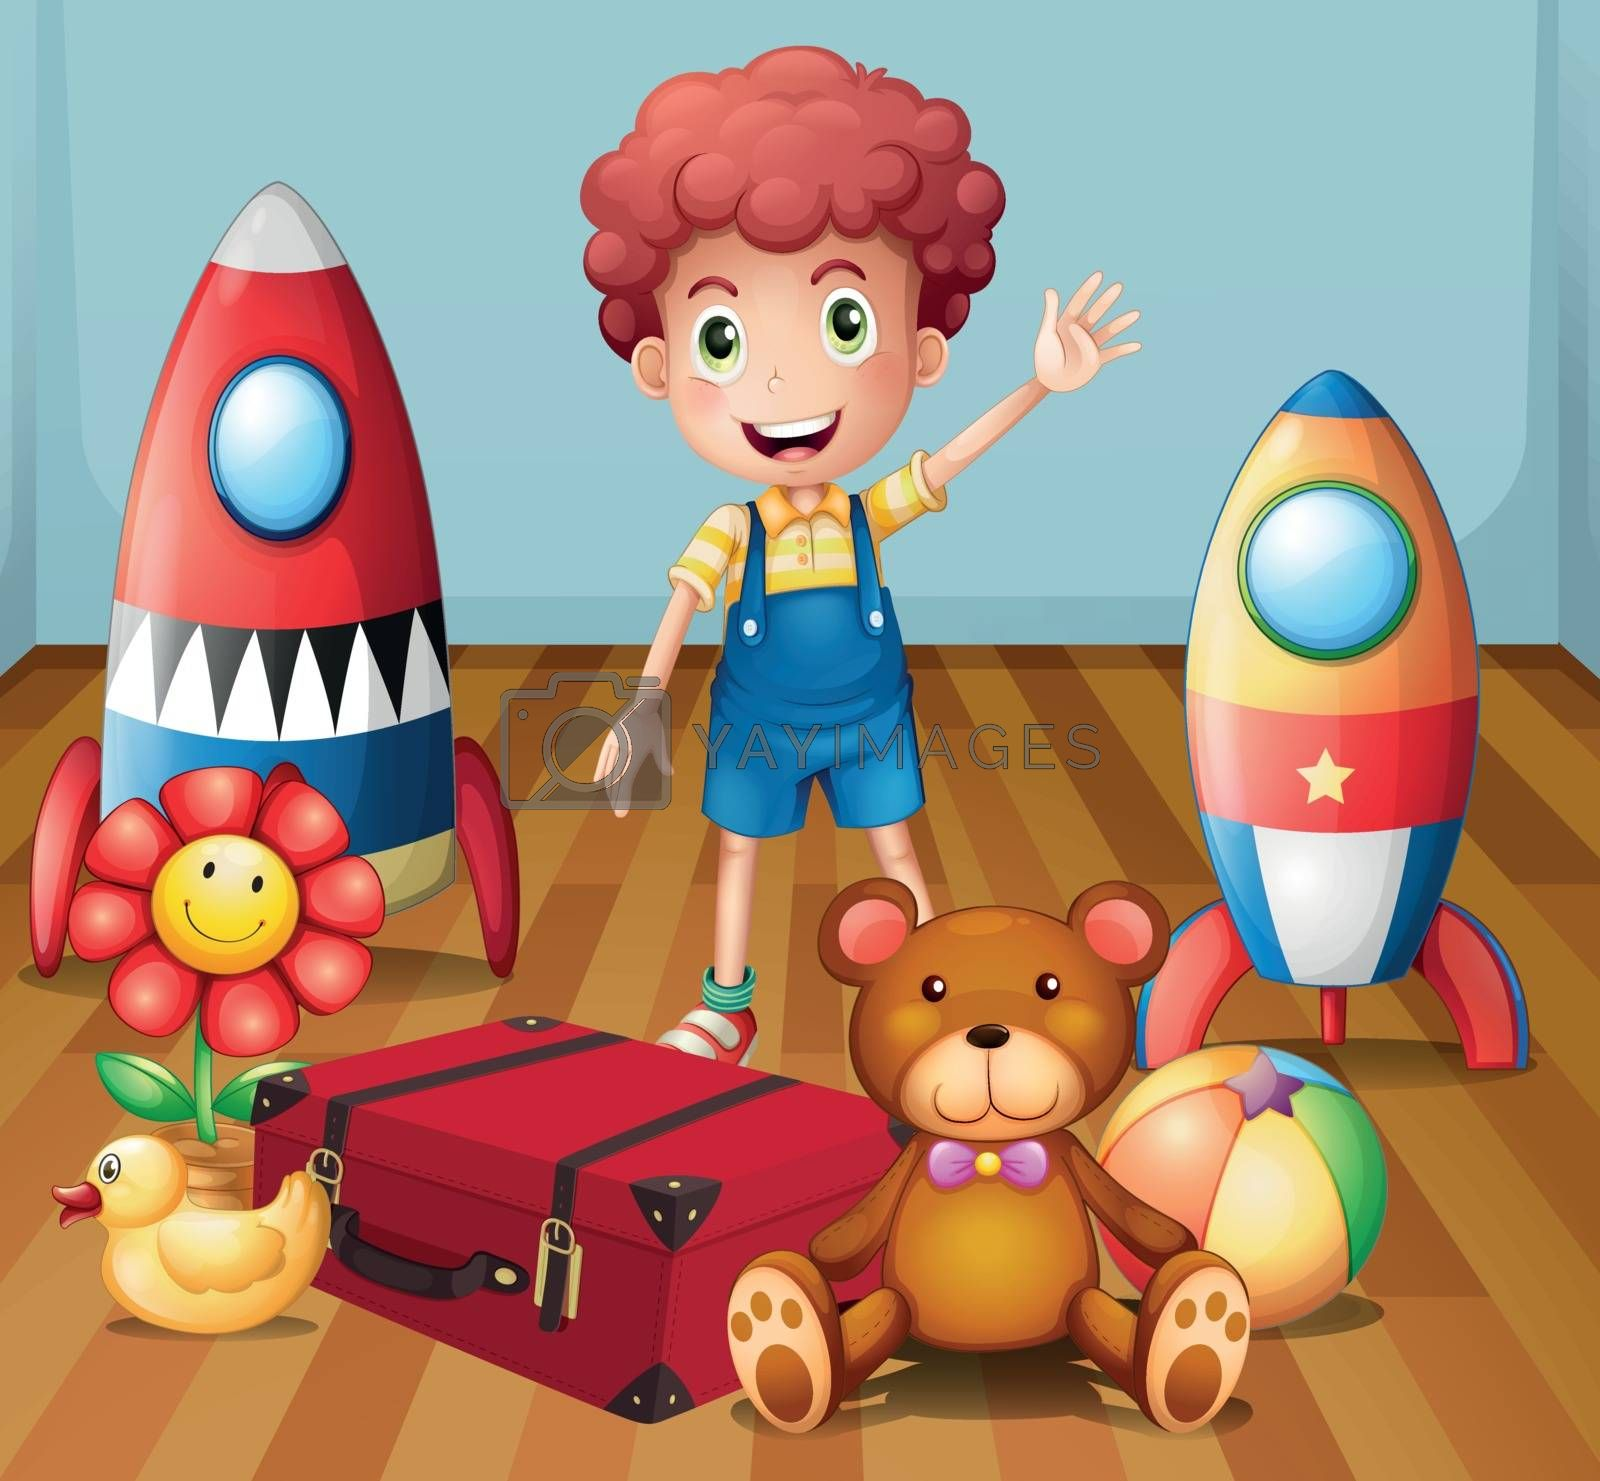 Illustration of a young boy with his toys inside the room